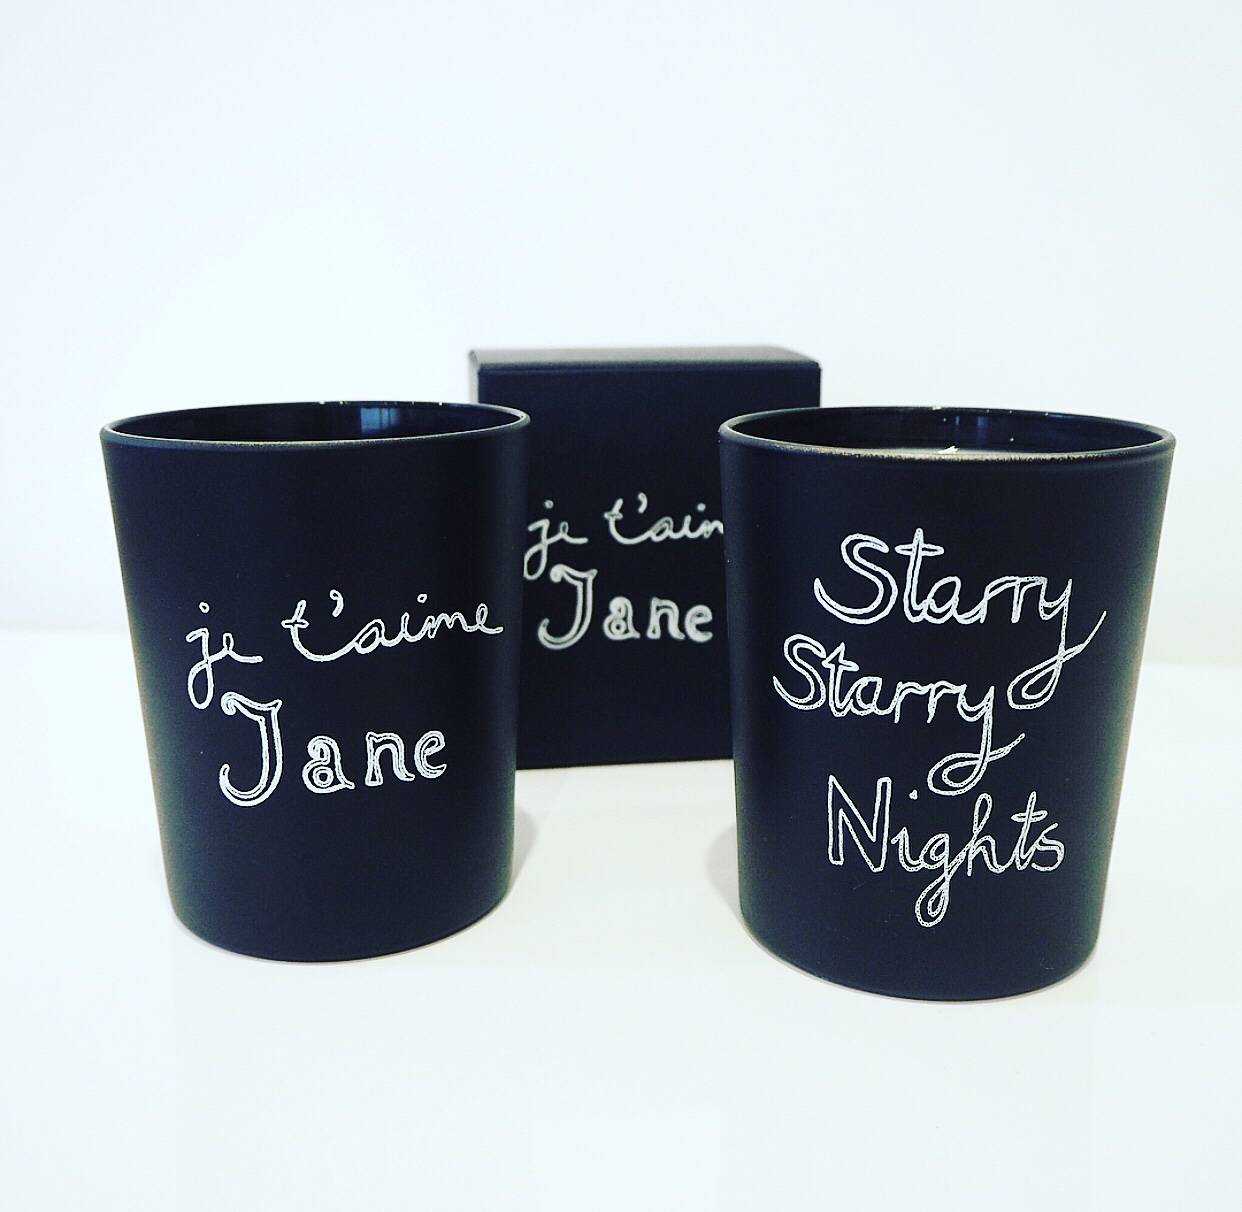 Bella Freud Starry Starry Nights Scented Candle, Bella Freud Je T'aime Jane Scented Candle